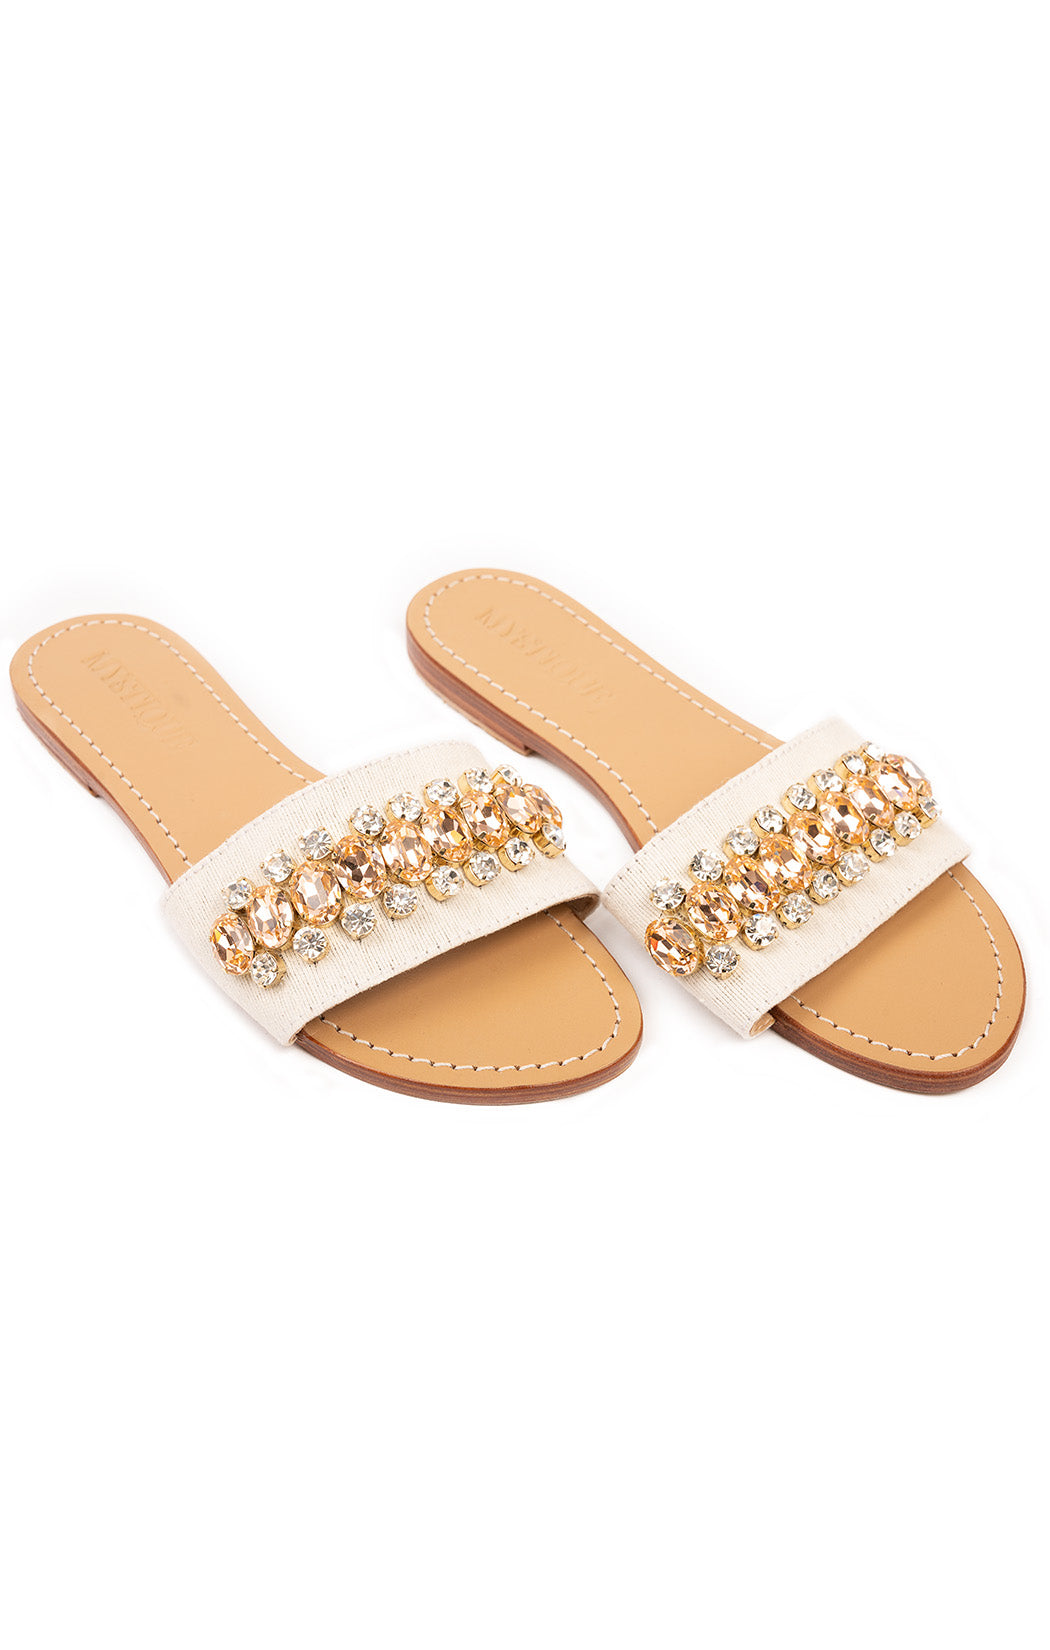 MYSTIQUE Sandals  Size: 10